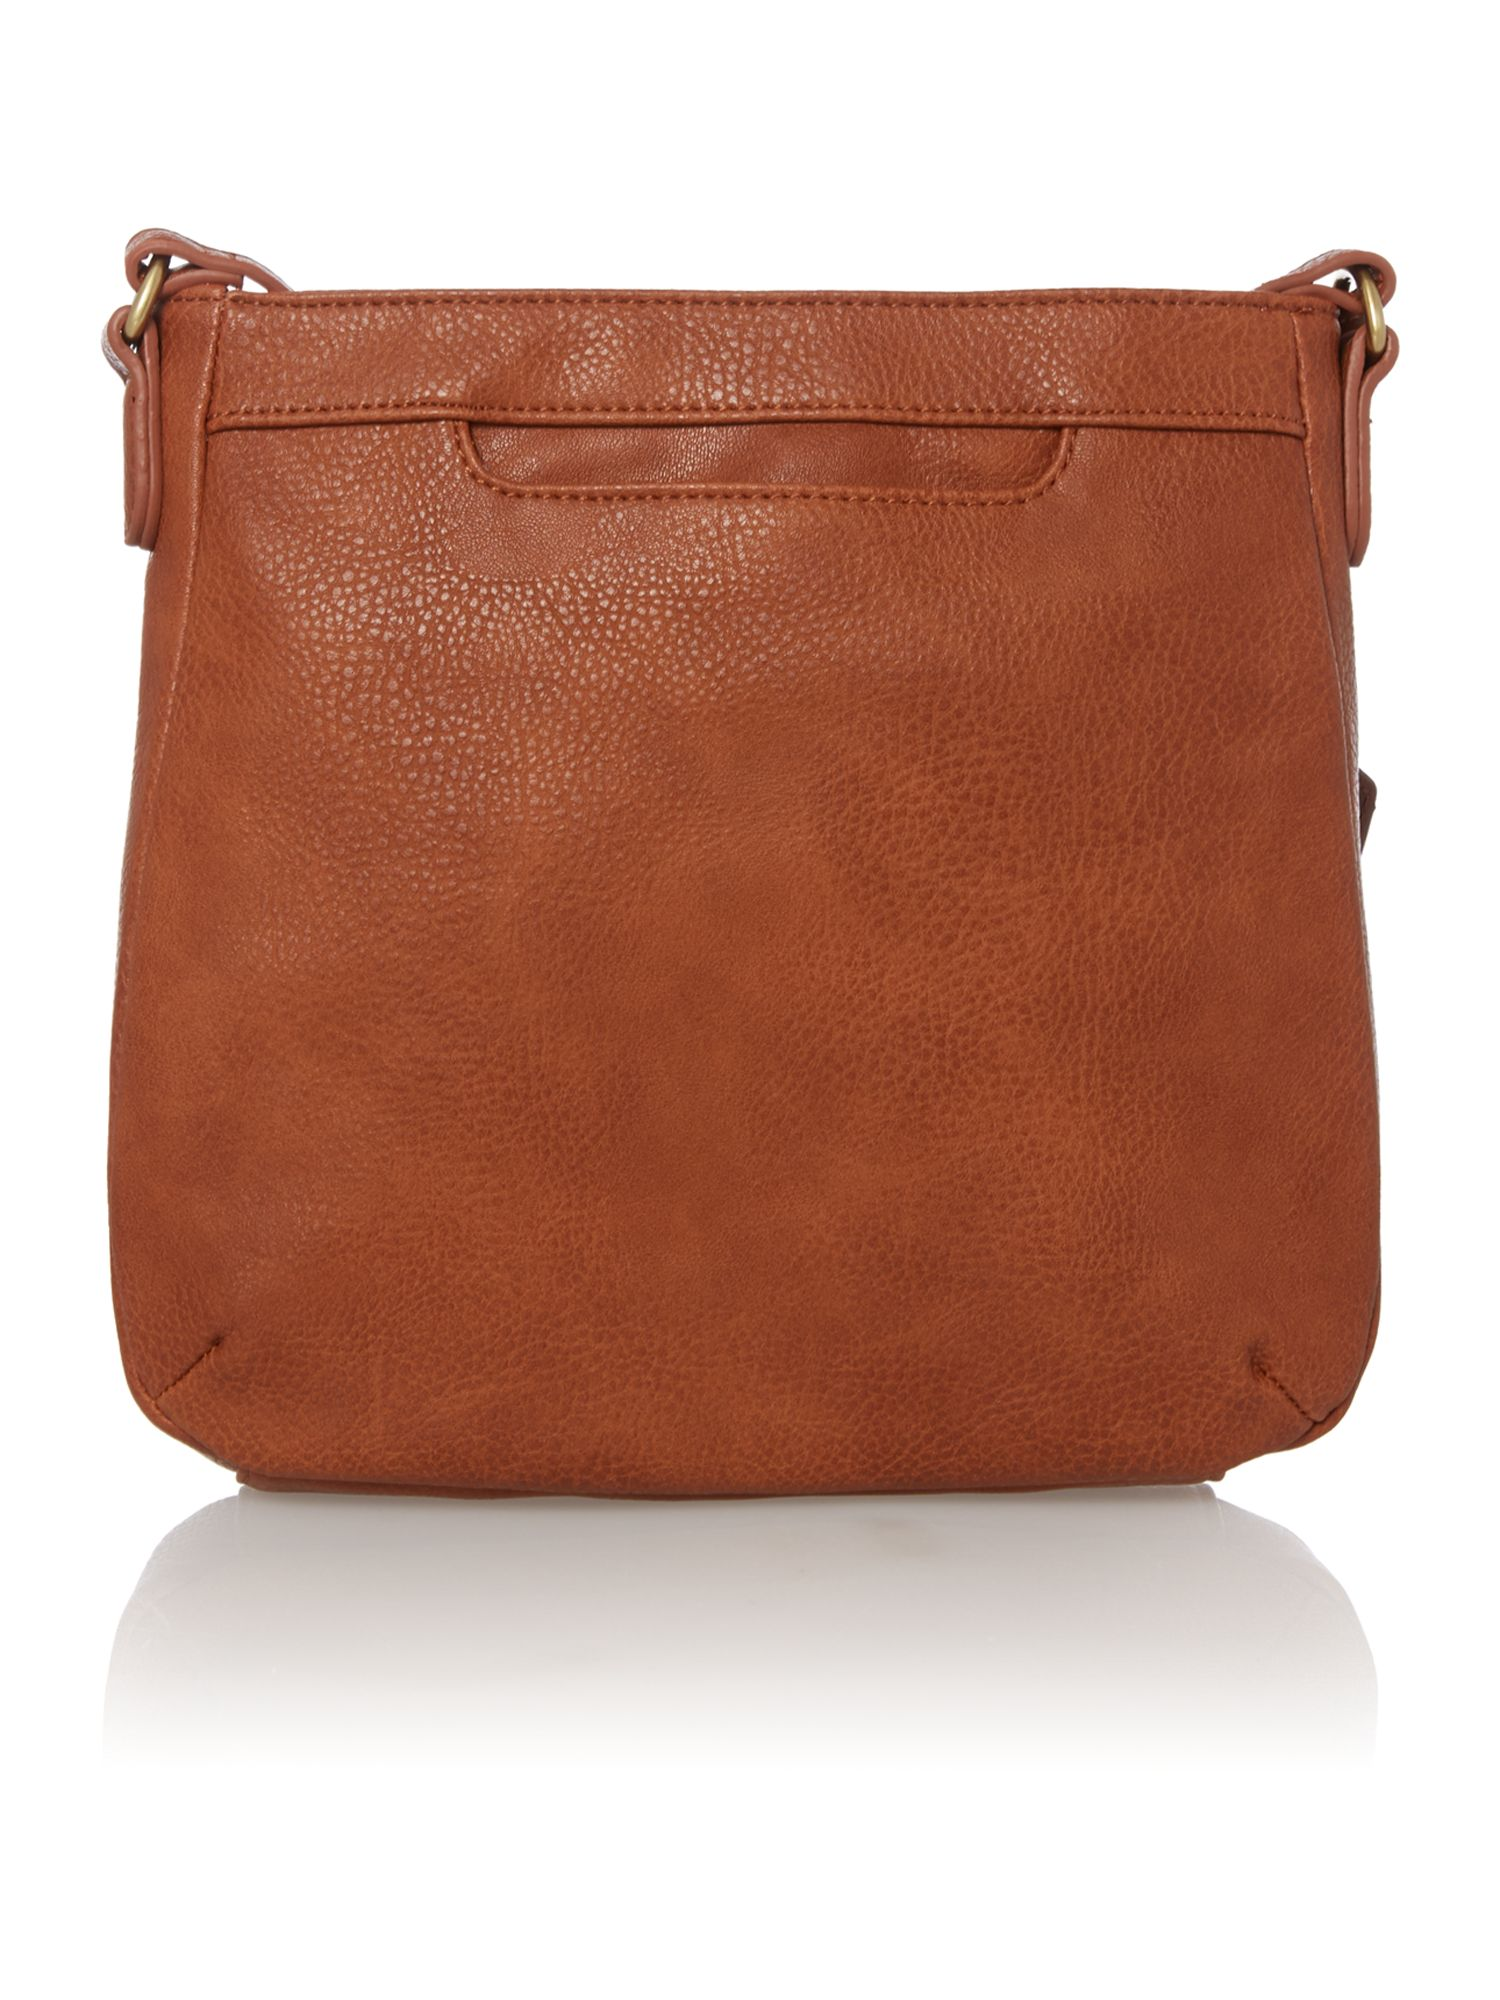 Natalie tan crossbody bag